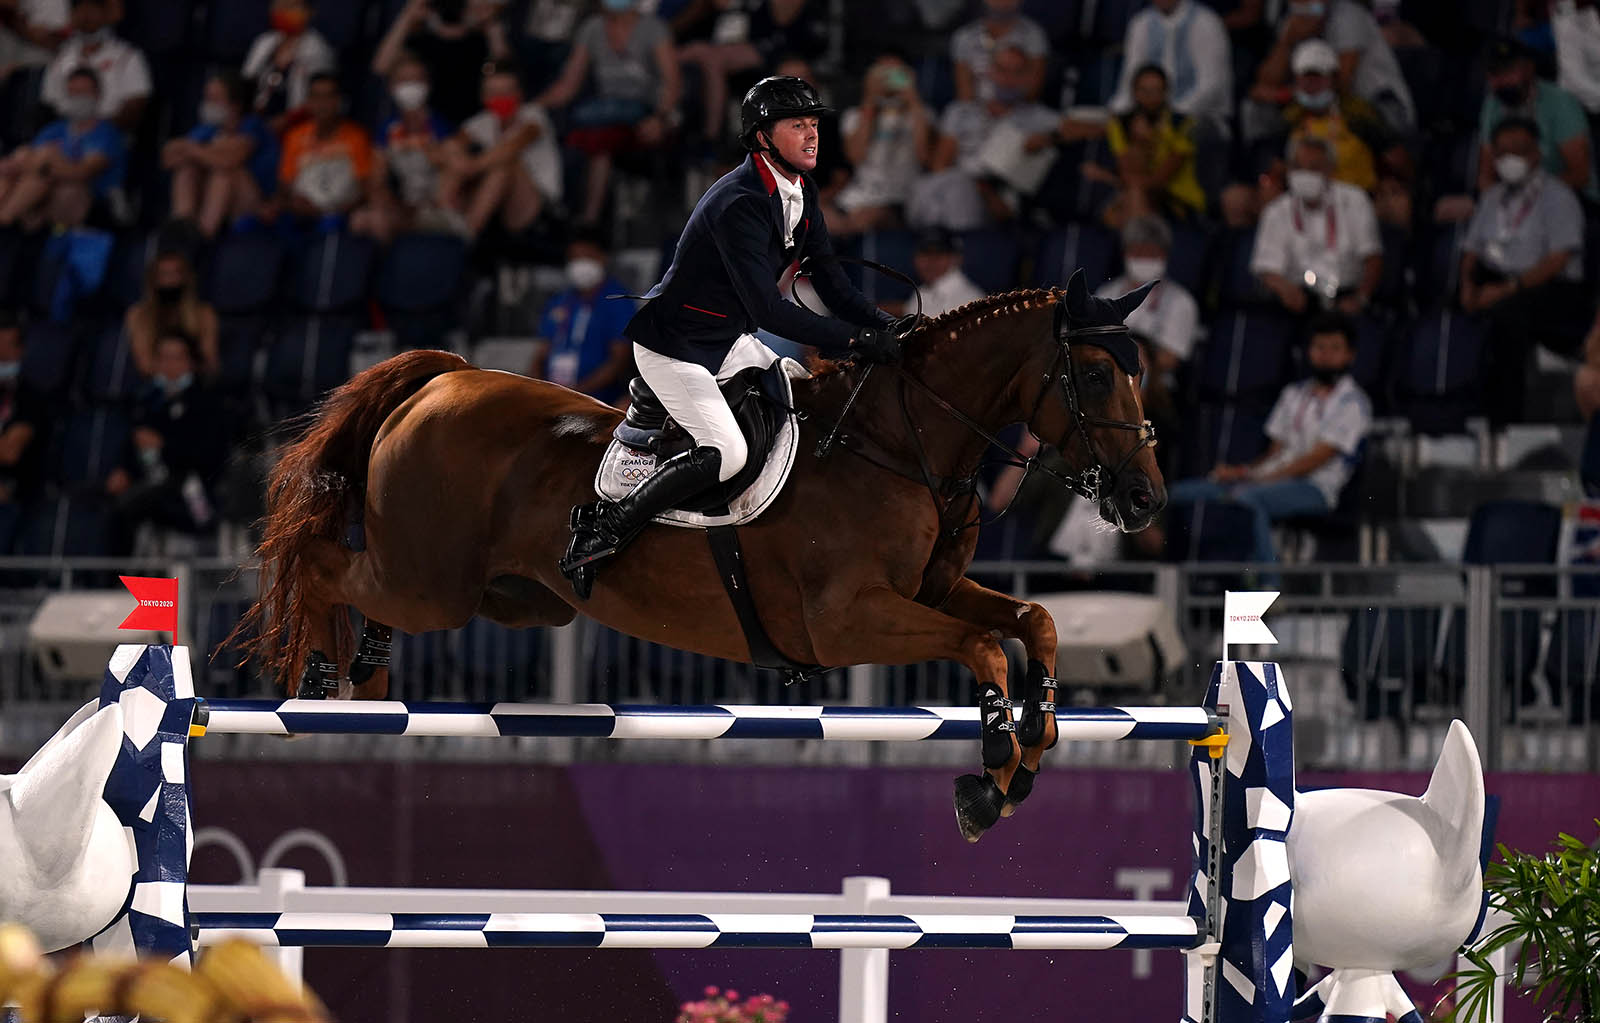 Great Britain's Ben Maher rides Explosion W in the jump-off during the jumping individual final on August 4.